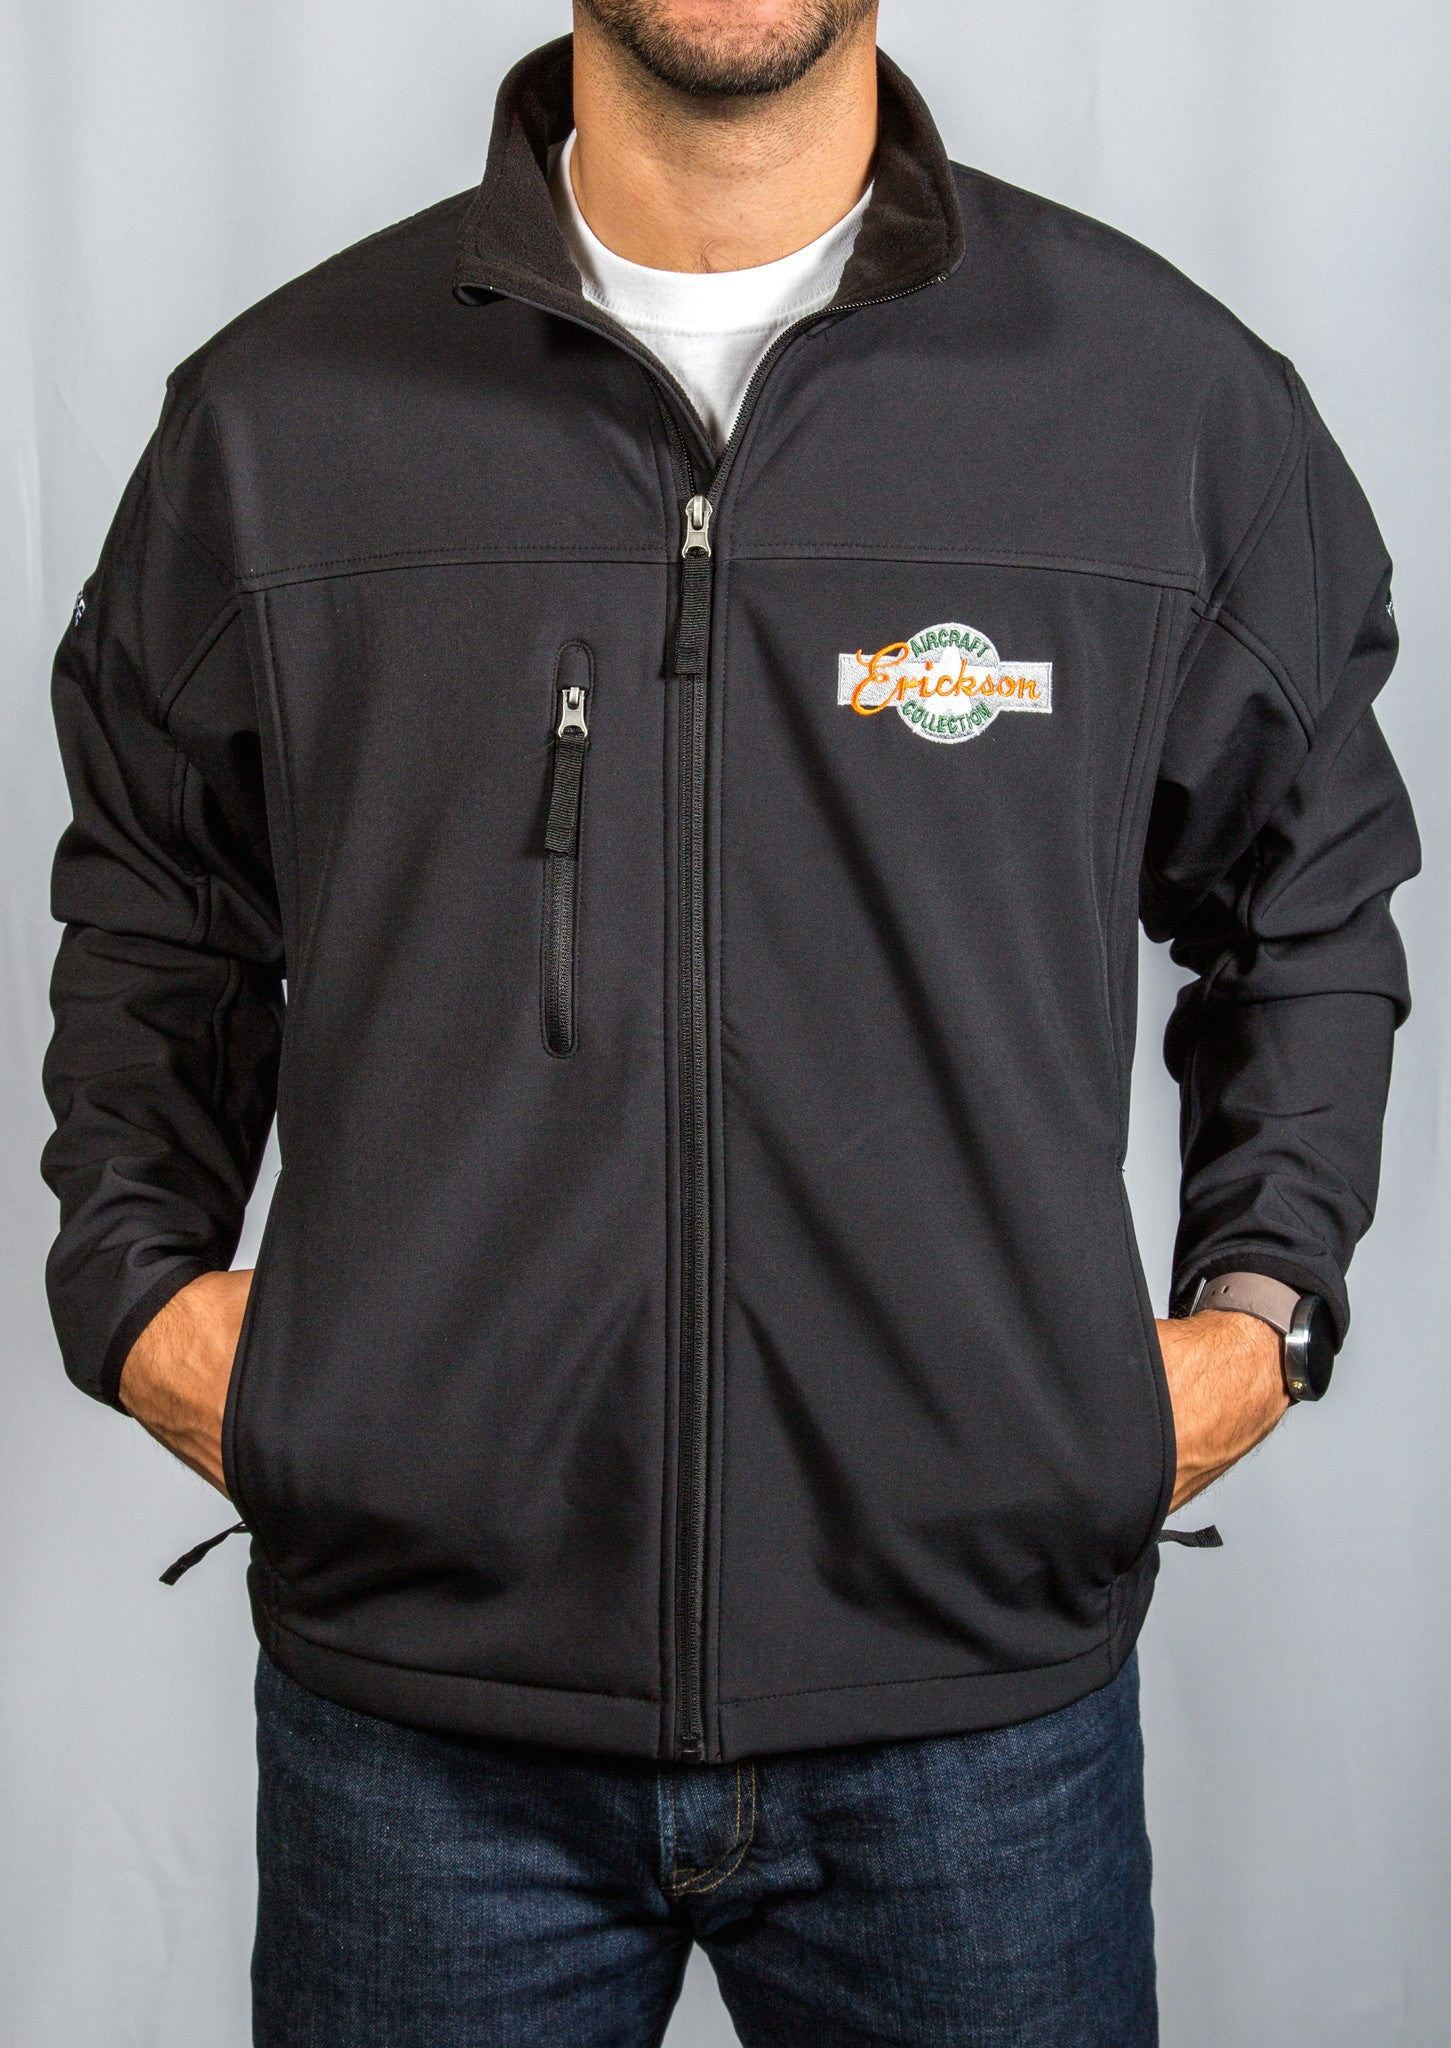 EAC Men's Soft Shell Jacket